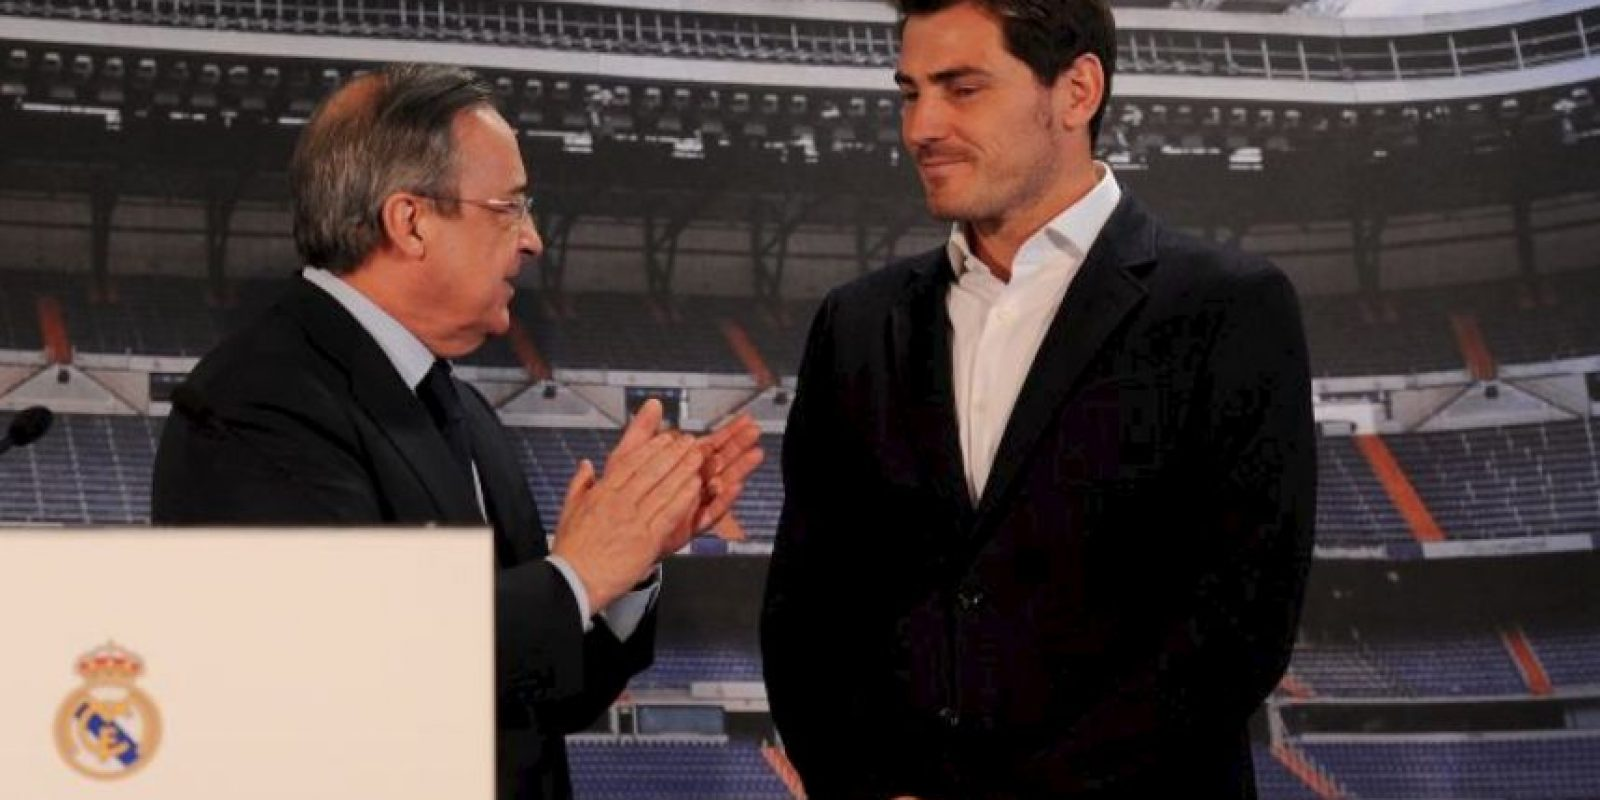 1. La madre de Iker Casillas Foto: Getty Images